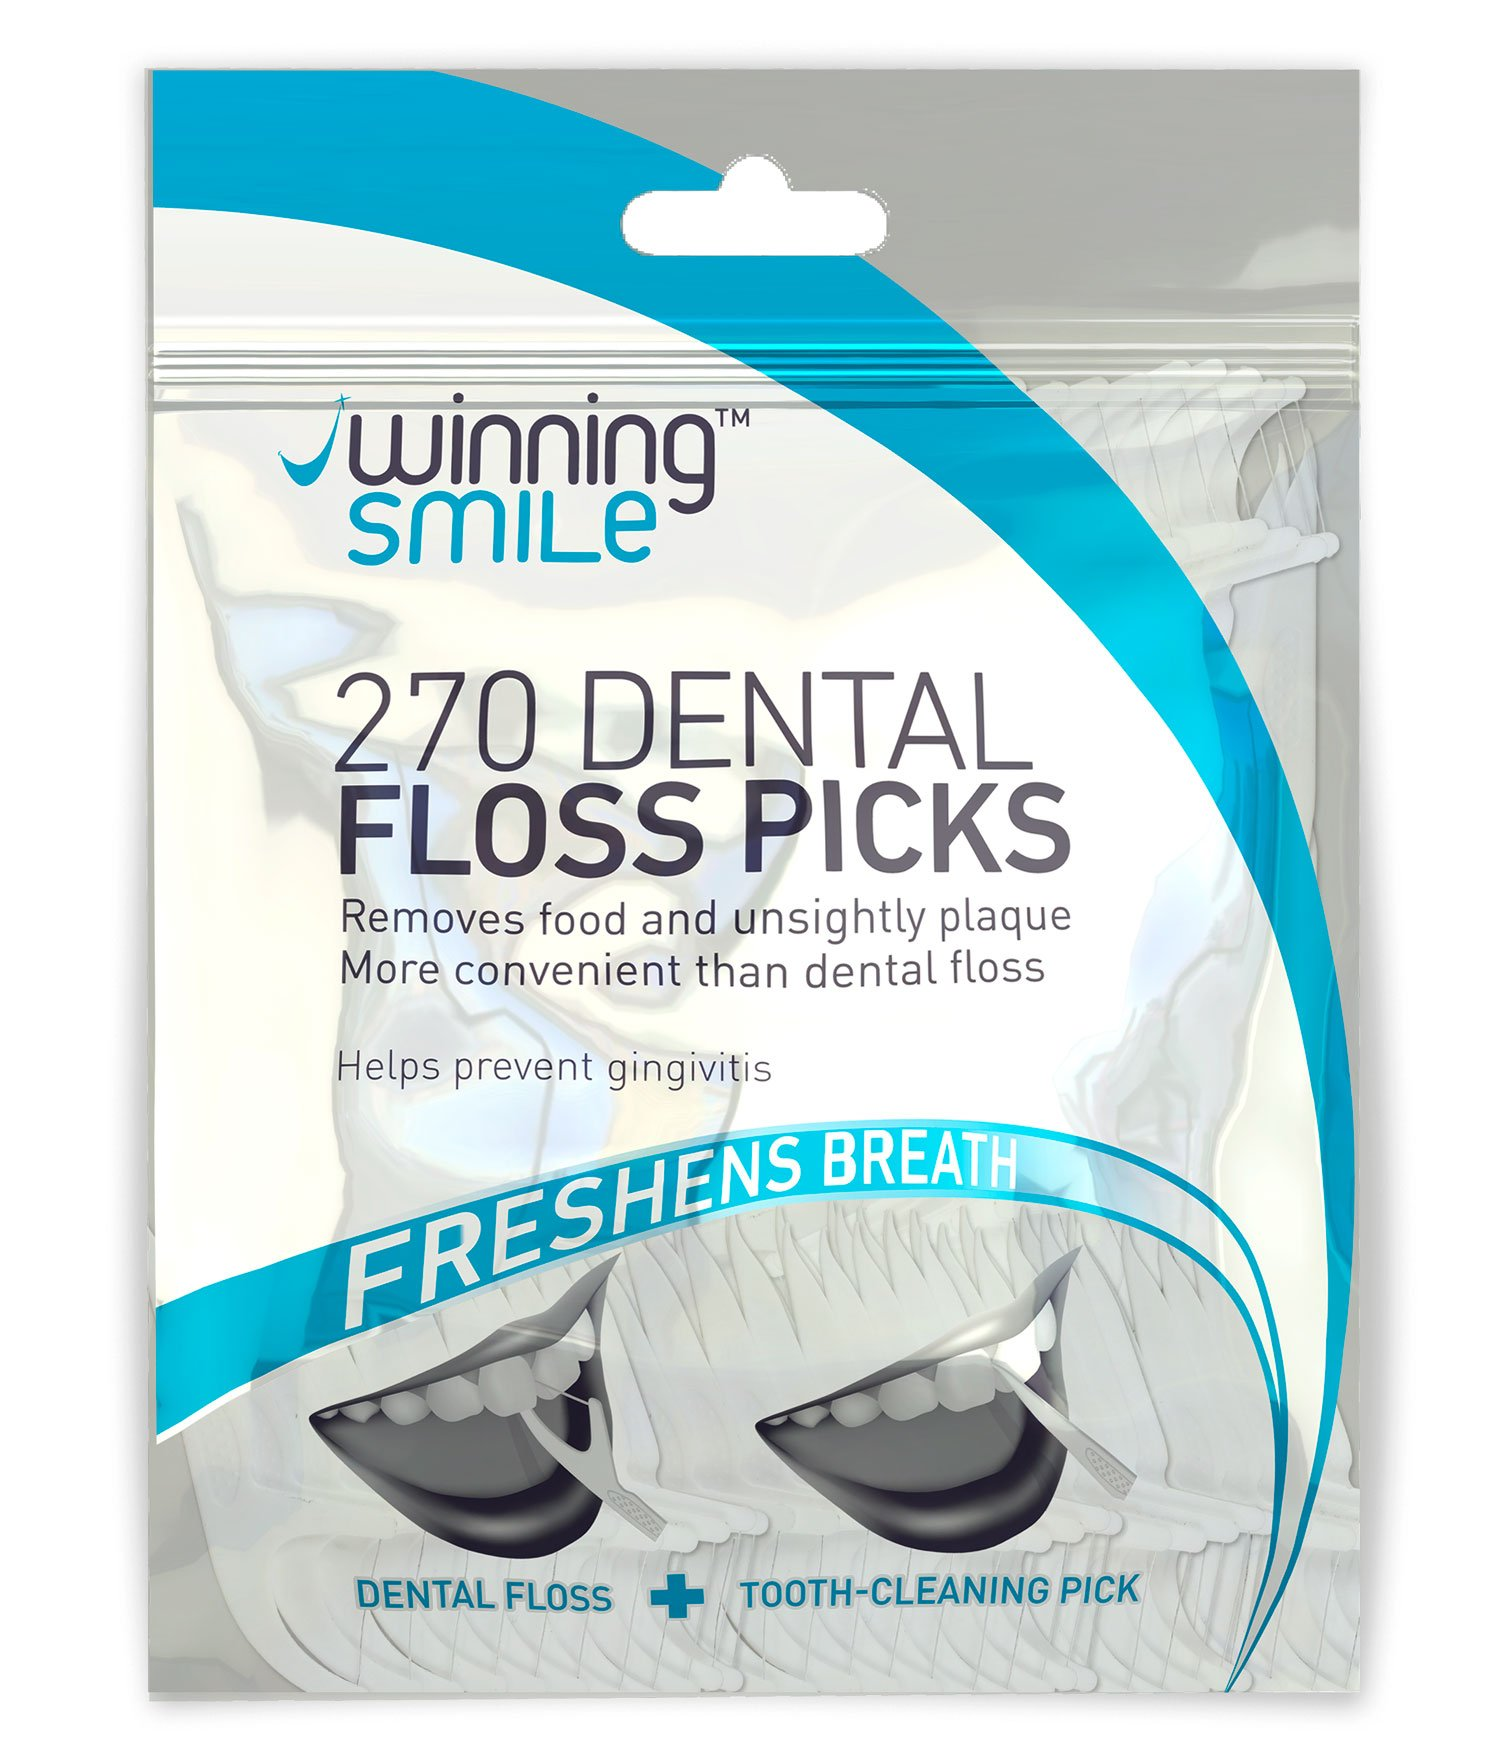 Floss Picks - High Quality Disposable Dental Flossers - The Perfect Pick for Adults and Kids with Braces - Pack of 270 Tooth Flossing Tools